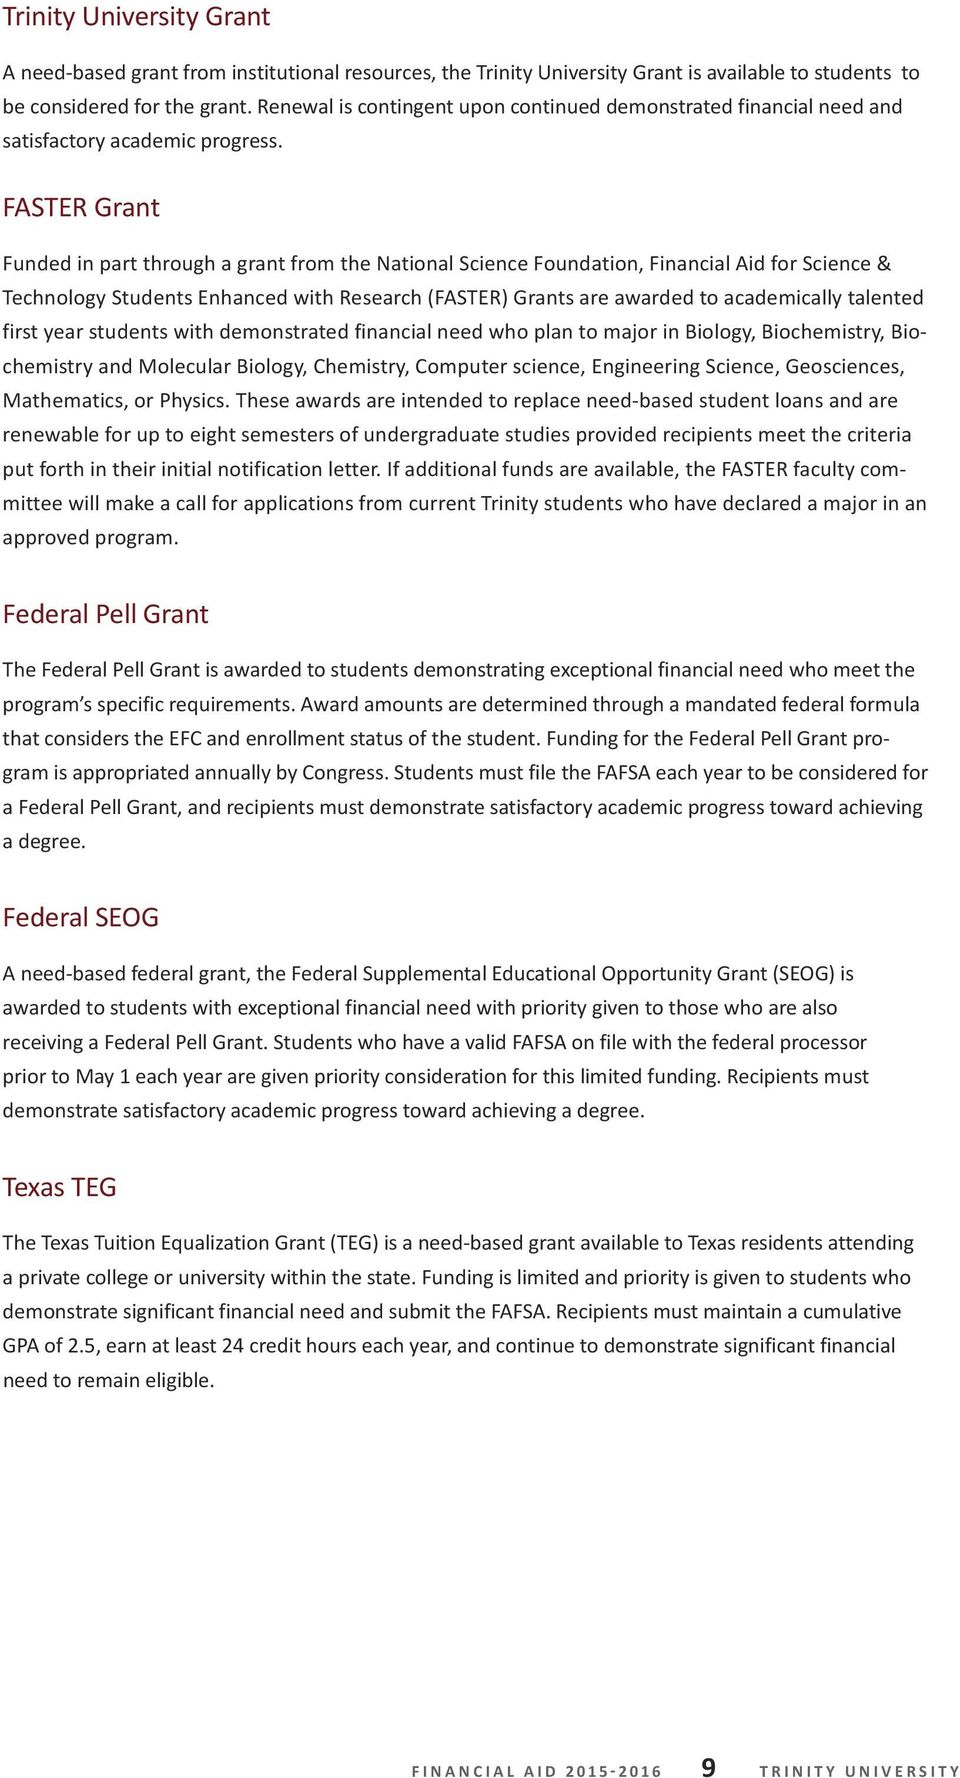 faster Grant funded in part through a grant from the national Science foundation, financial aid for Science & Technology Students enhanced with Research (faster) Grants are awarded to academically